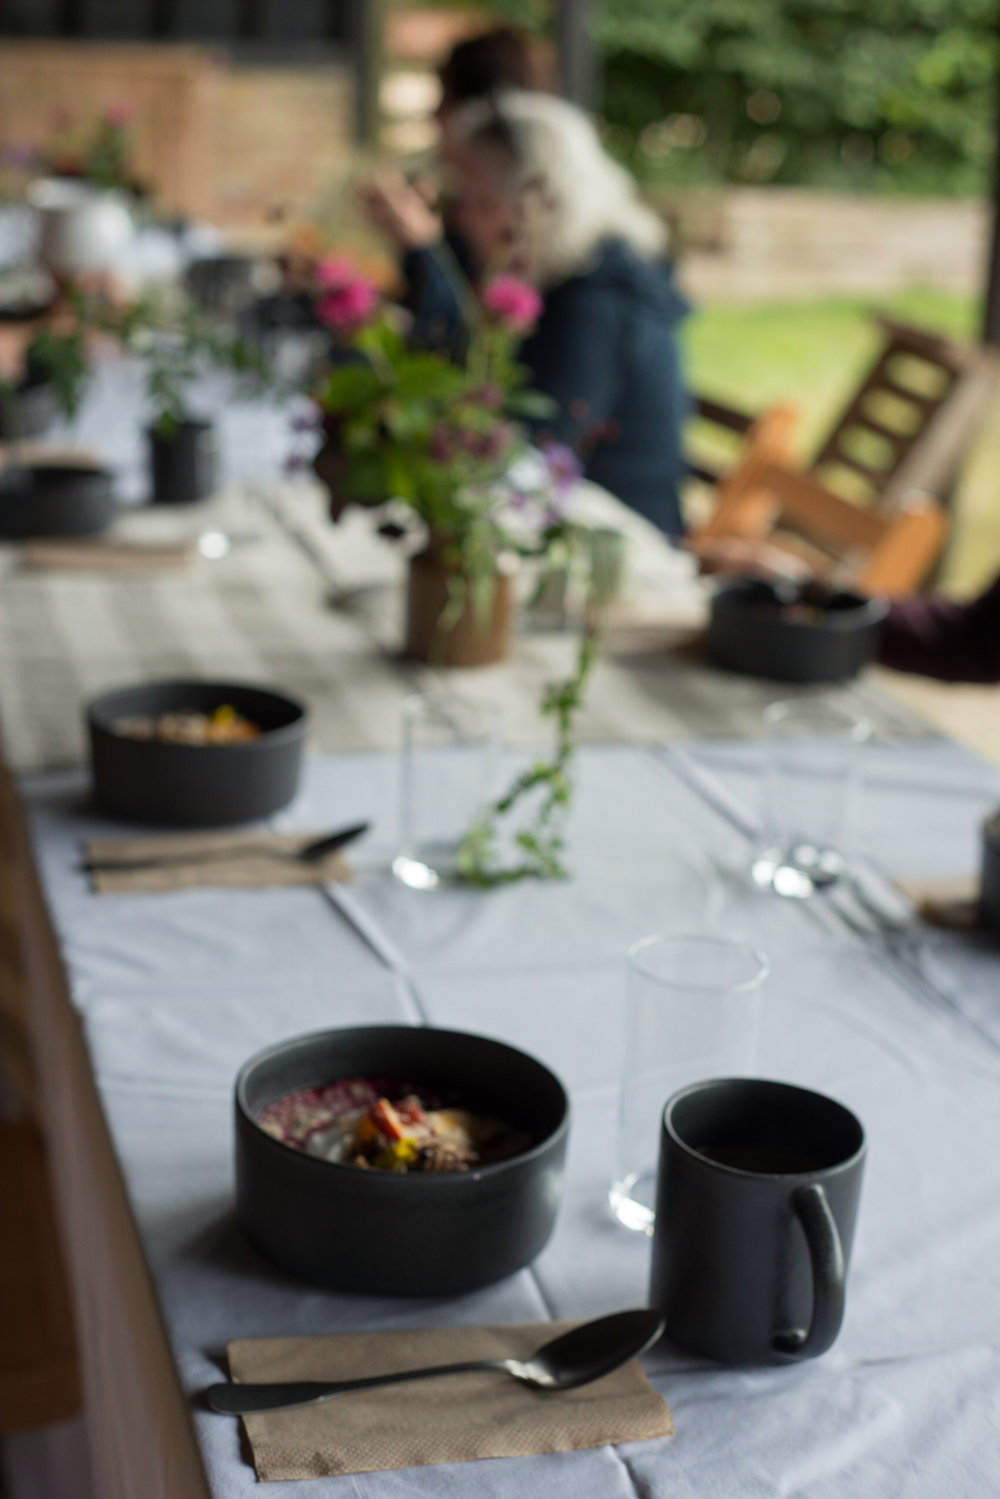 Breakfast bowls on retreat | hannahbullivant.com